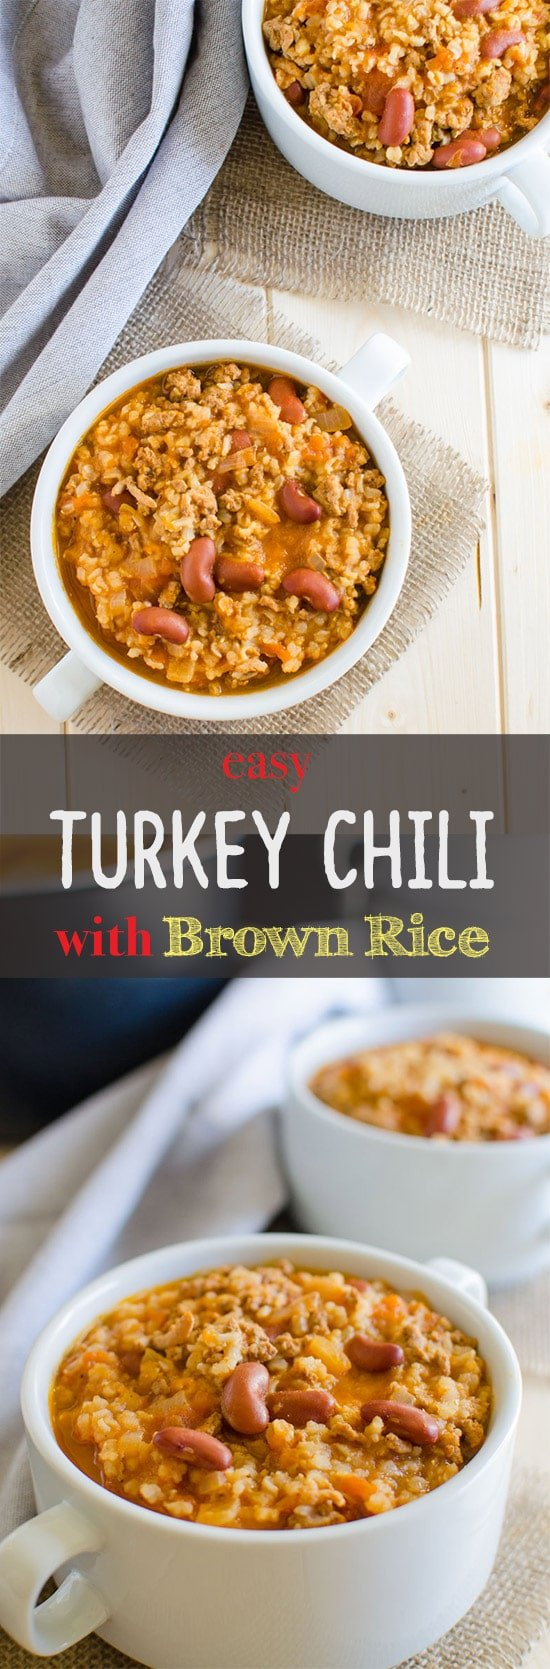 this easy turkey chili is simple to prepare healthy and a one pot meal